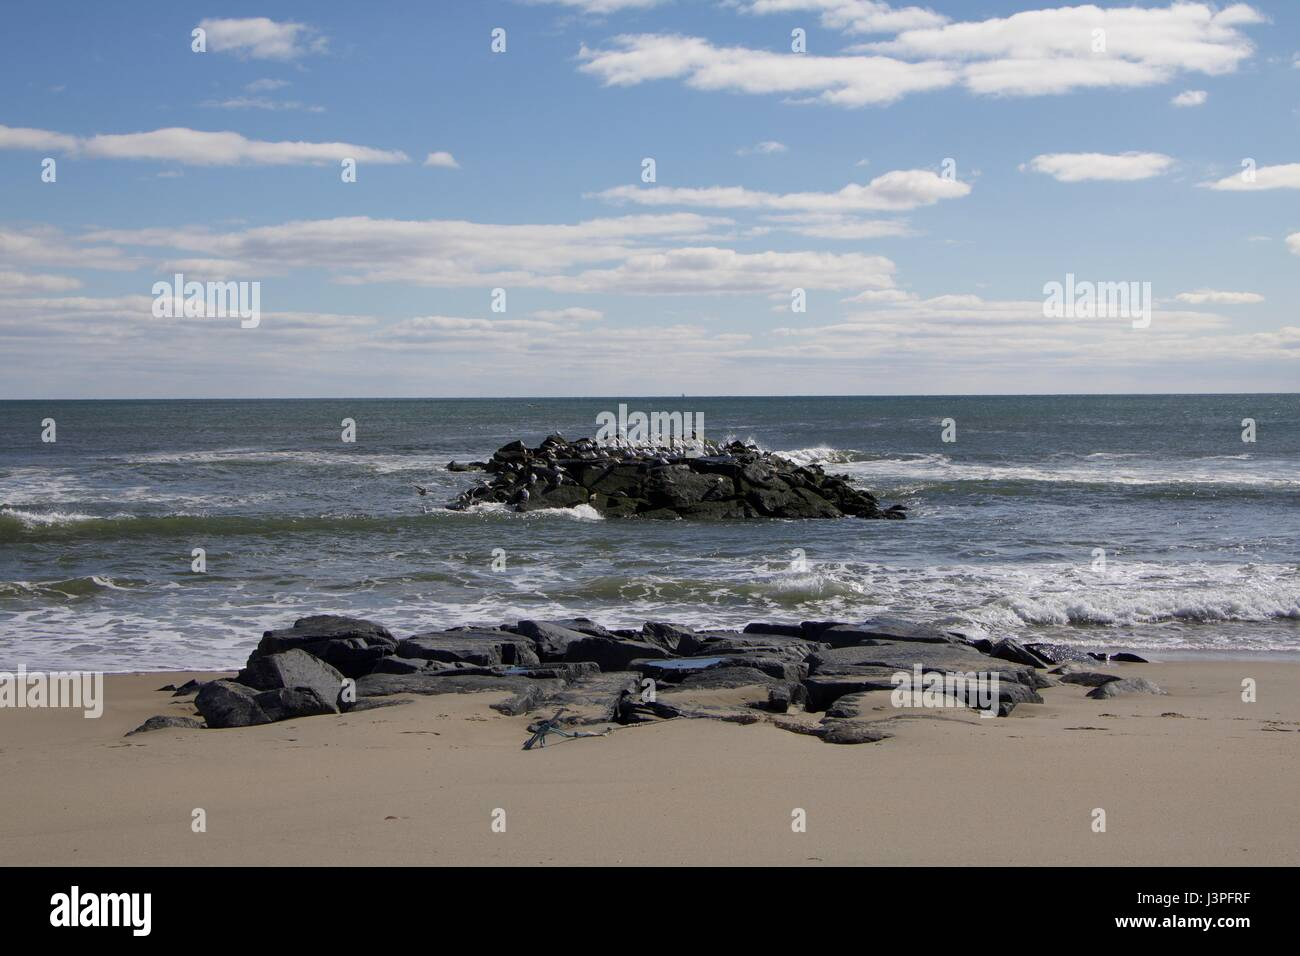 Daytime stock photo of rocks off the shoreline of beach in Spring Lake, New Jersey on sunny morning. - Stock Image